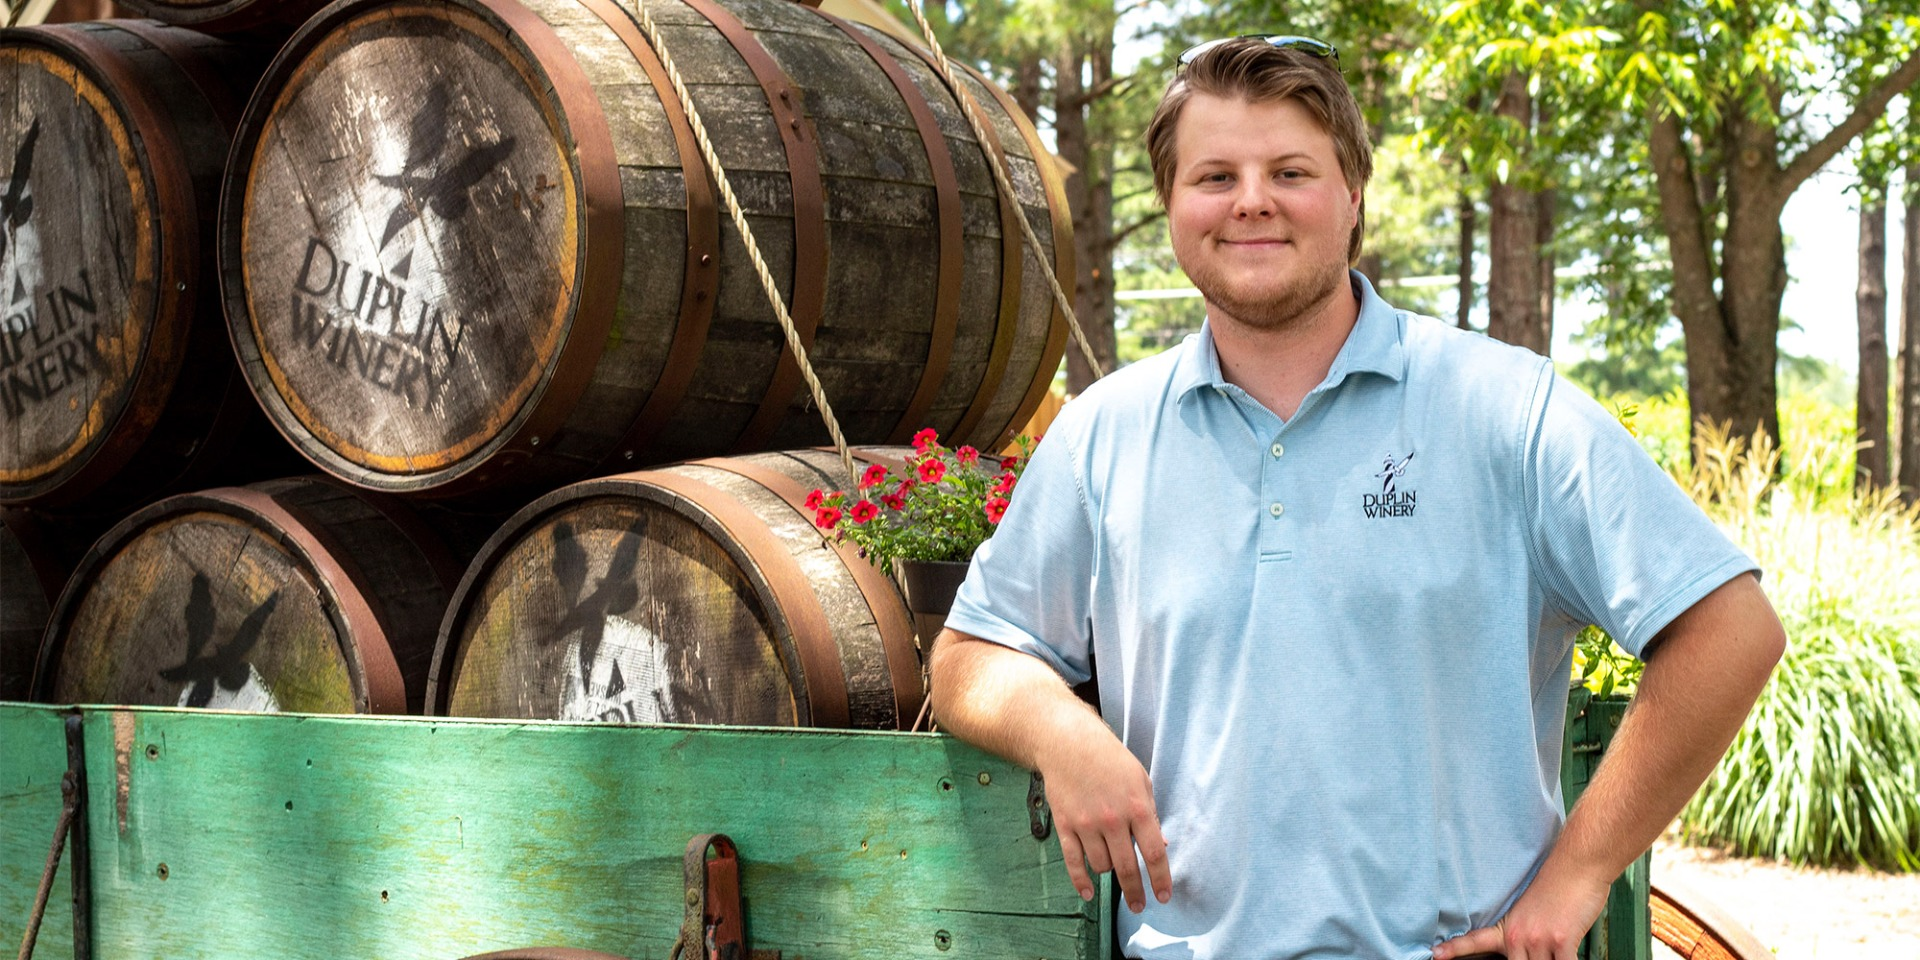 """Gray Fussell wasn't always sure that he wanted a career at his family's Duplin Winery. """"Little by little my perspective on Duplin began to change."""""""